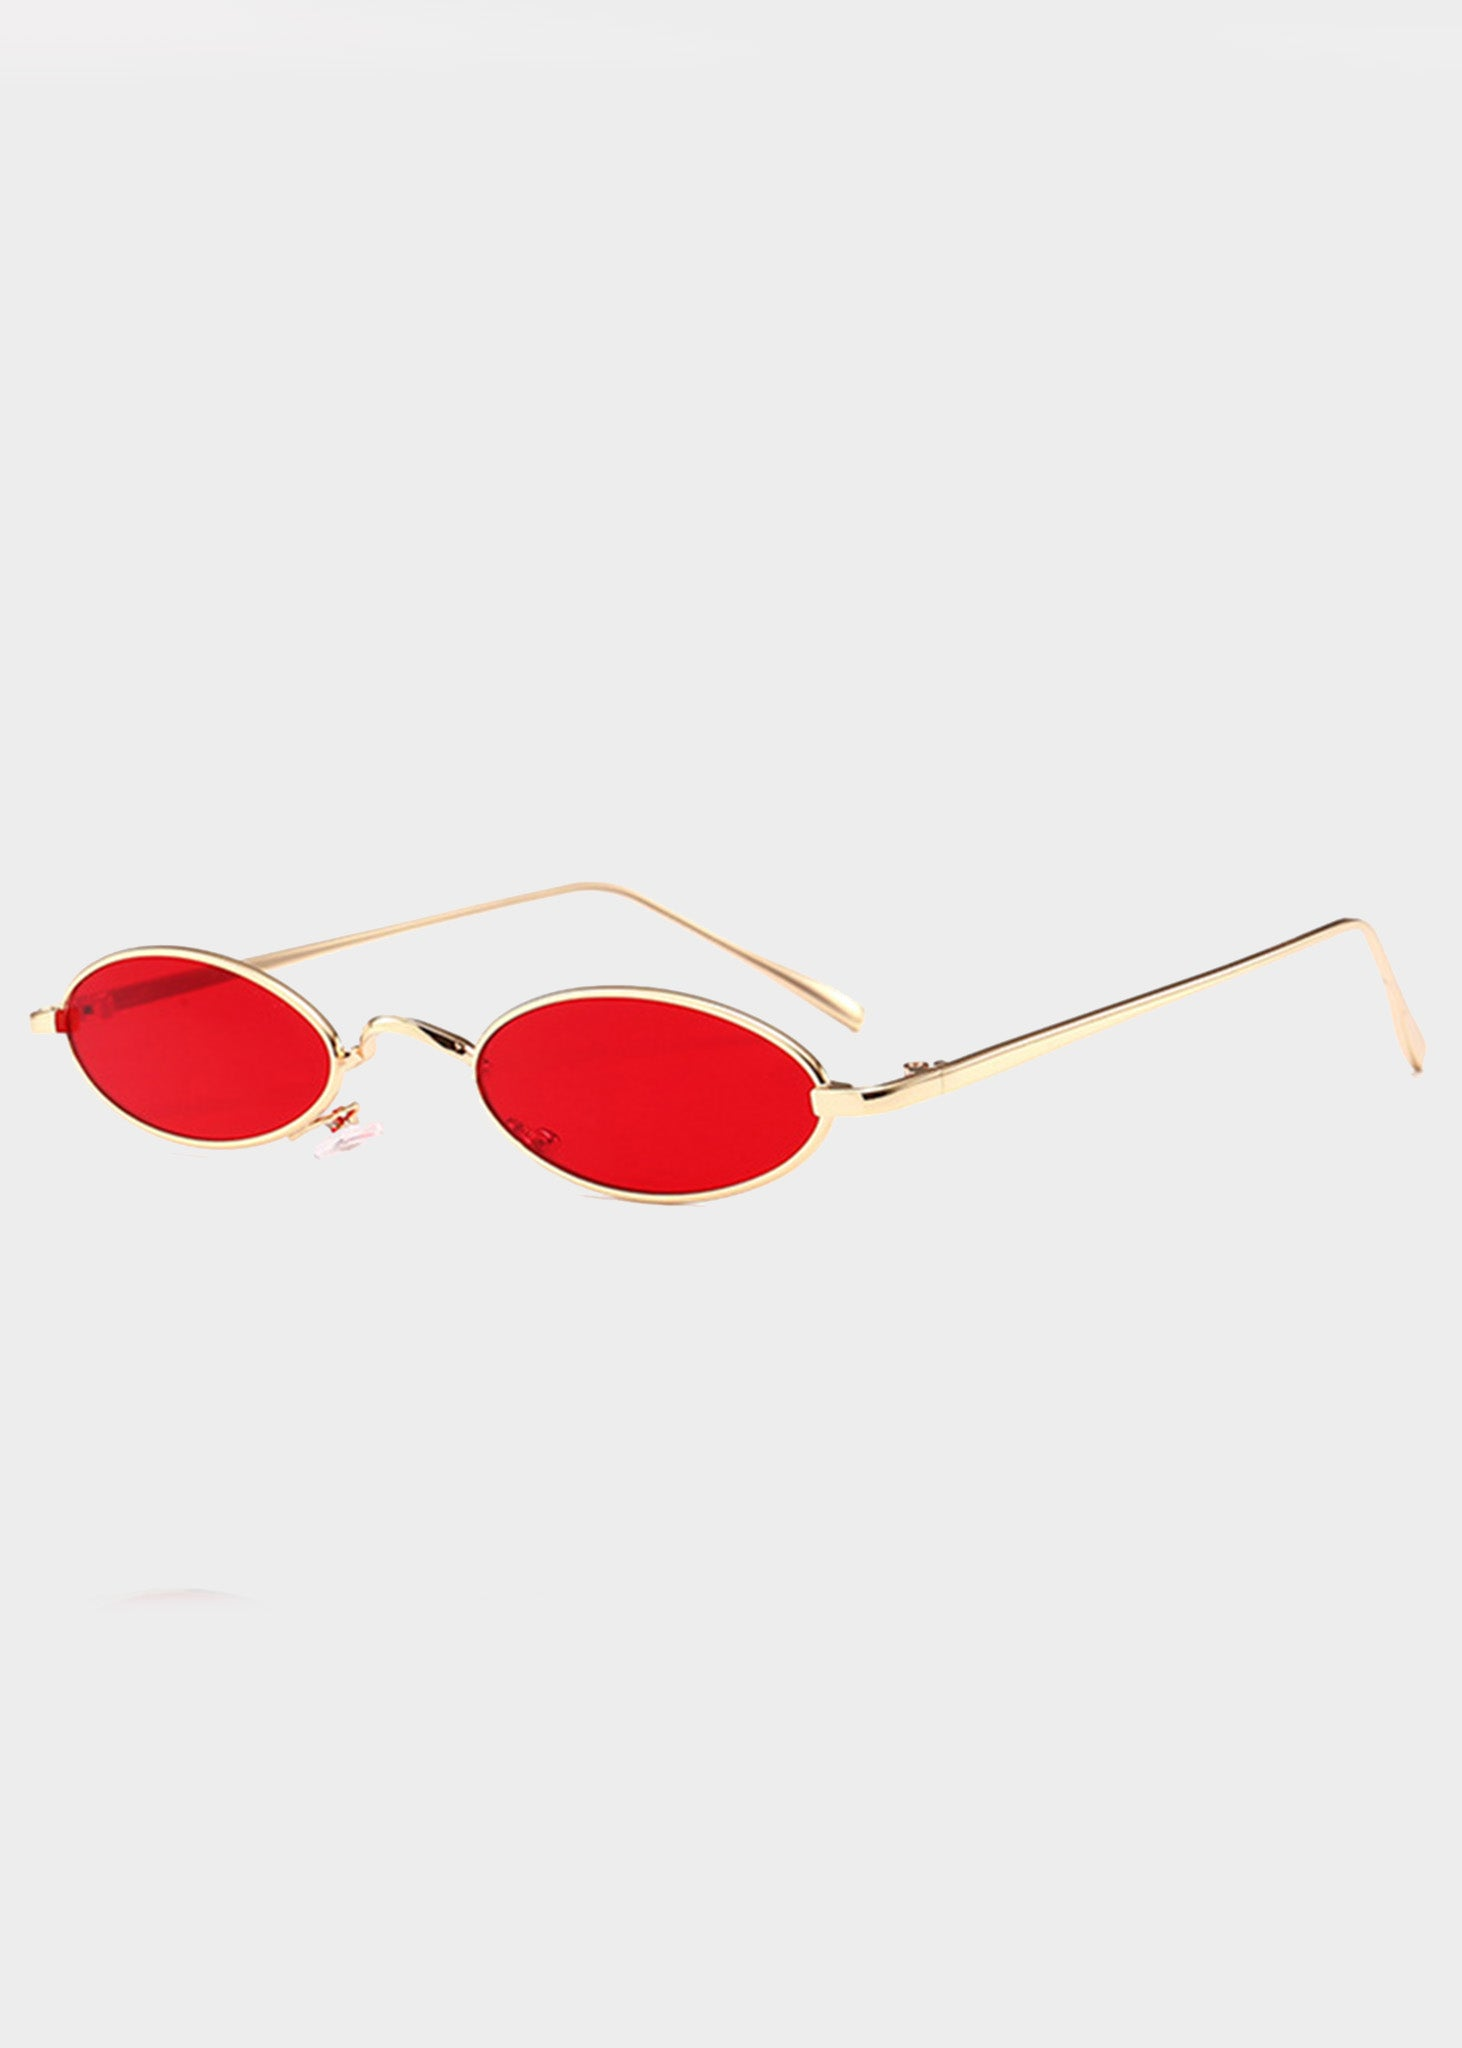 b3bb3ab5ee ... Red Small Lens Oval Sunglasses